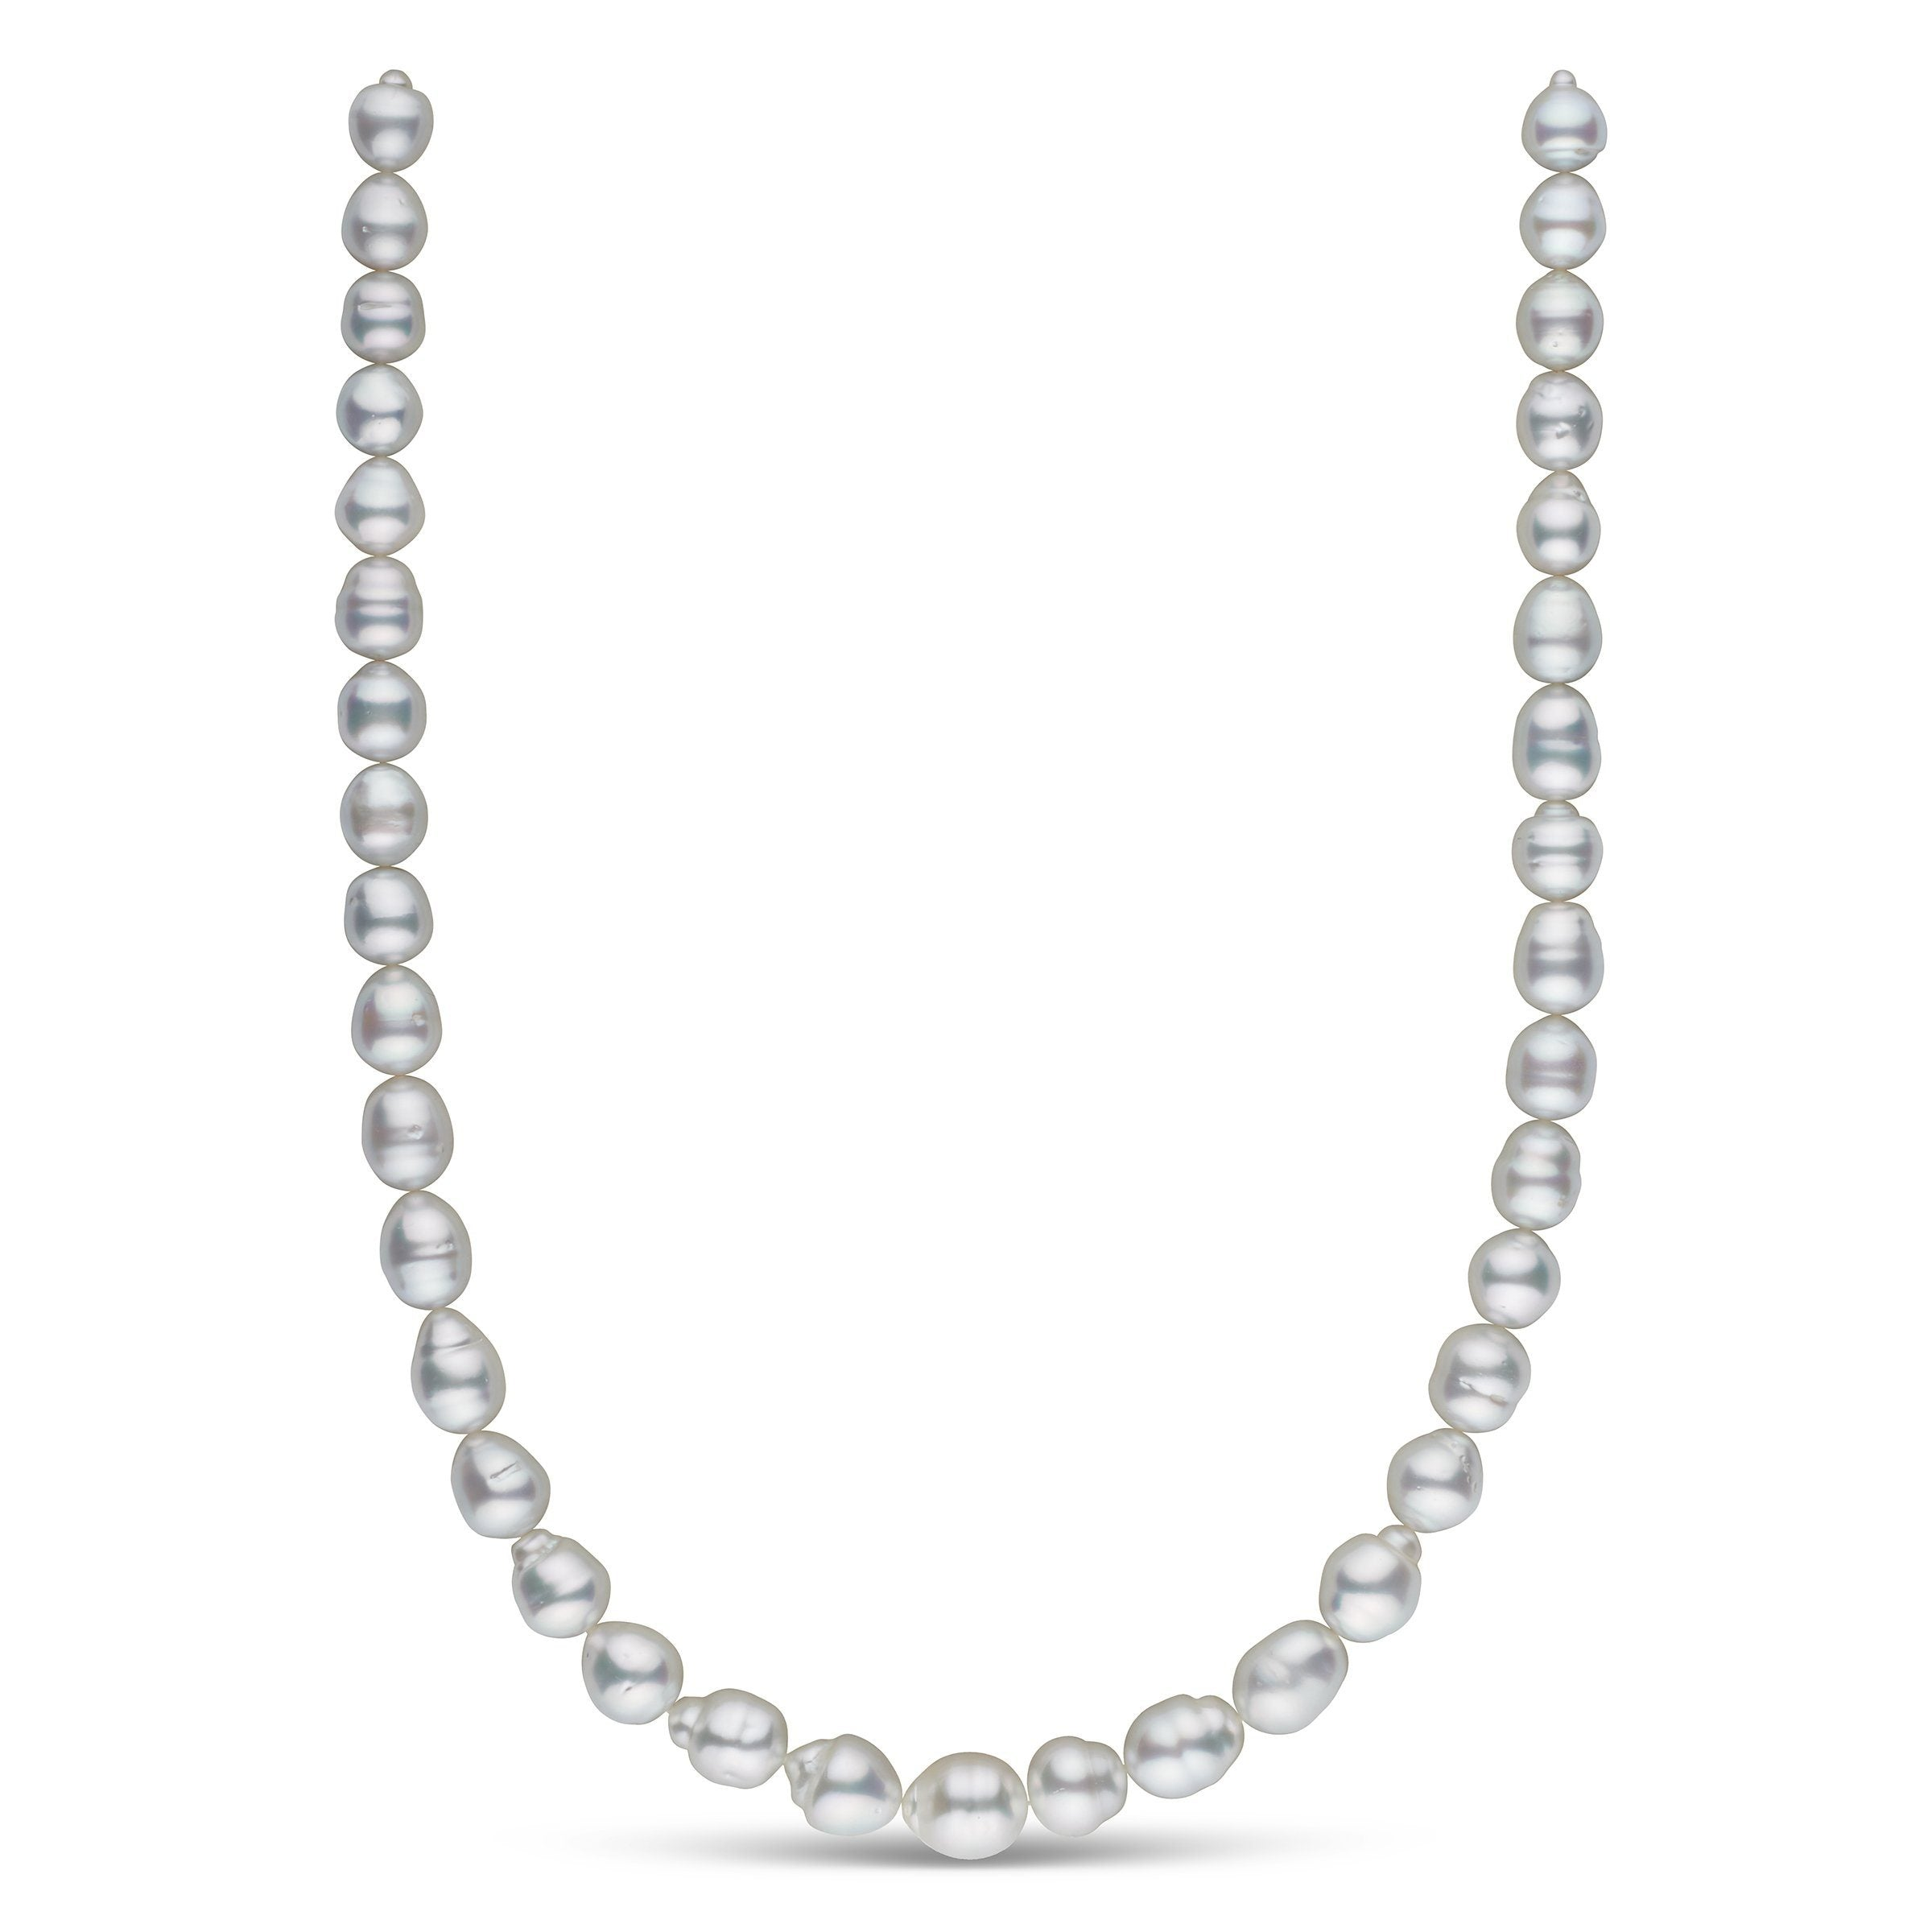 8.9-11.1 mm AA+/AAA White South Sea Baroque Necklace